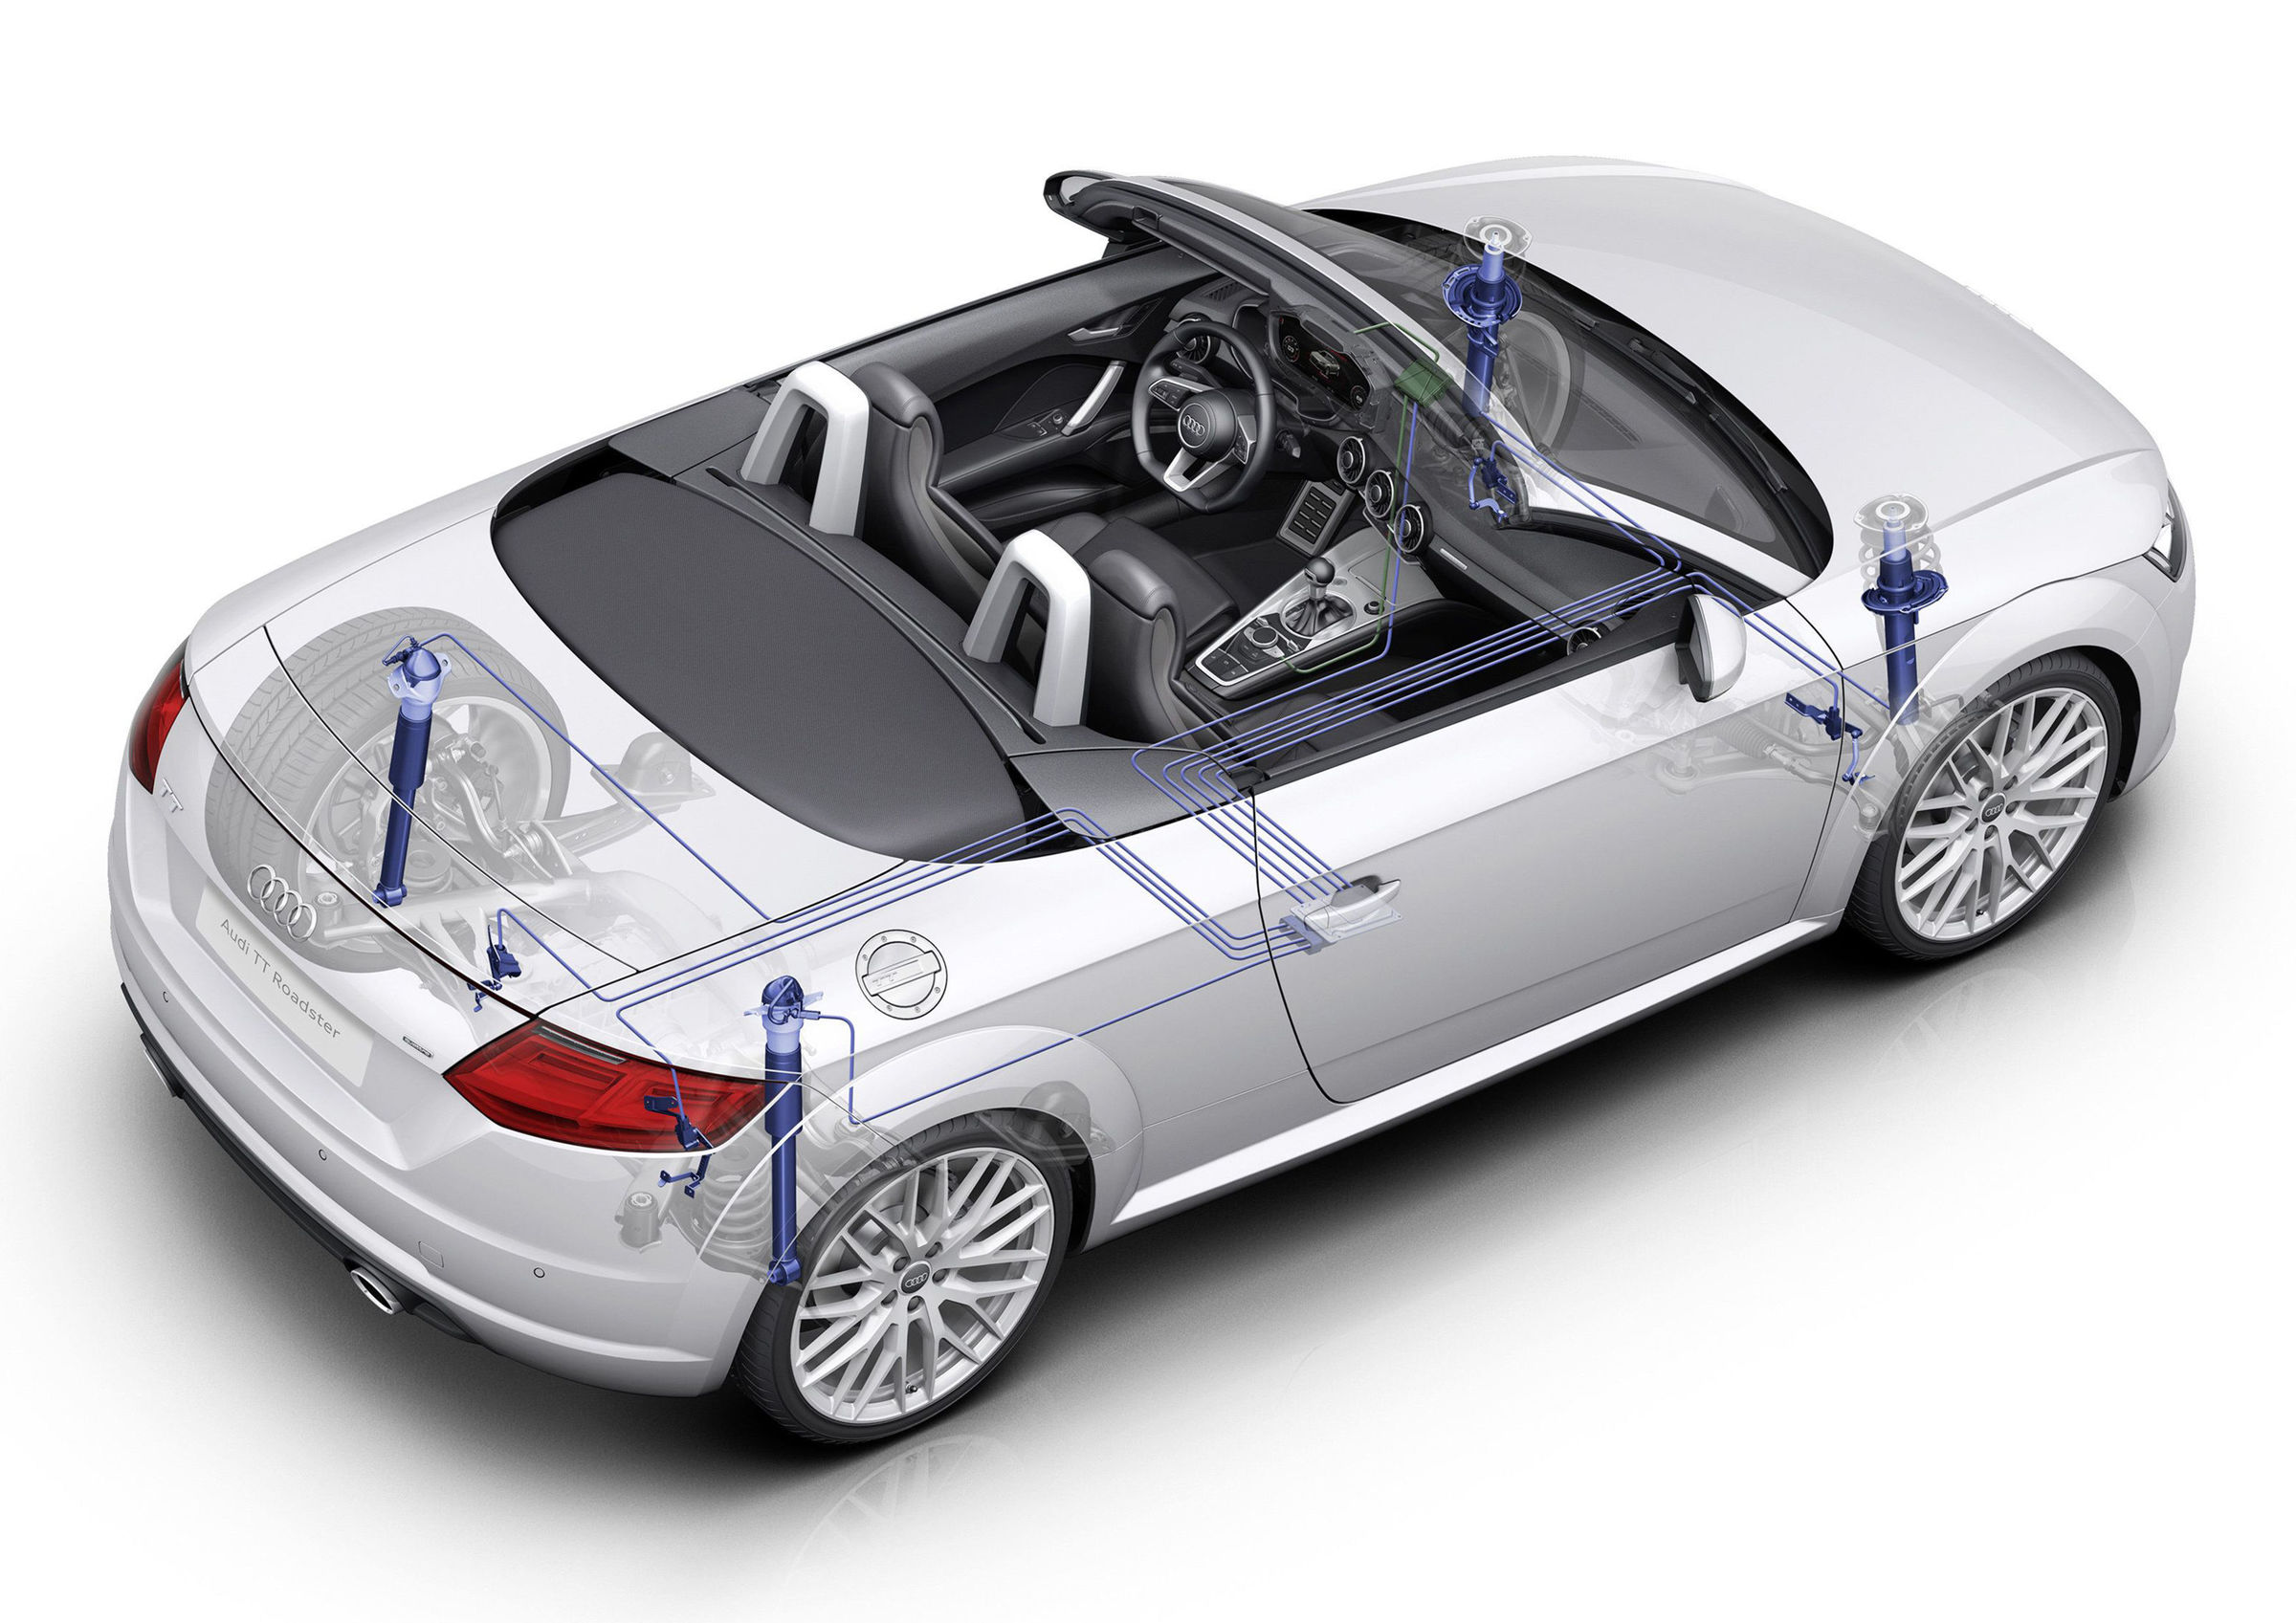 hight resolution of chassis audi mediacenter system diagram moreover audi a8 air suspension diagram on oil system